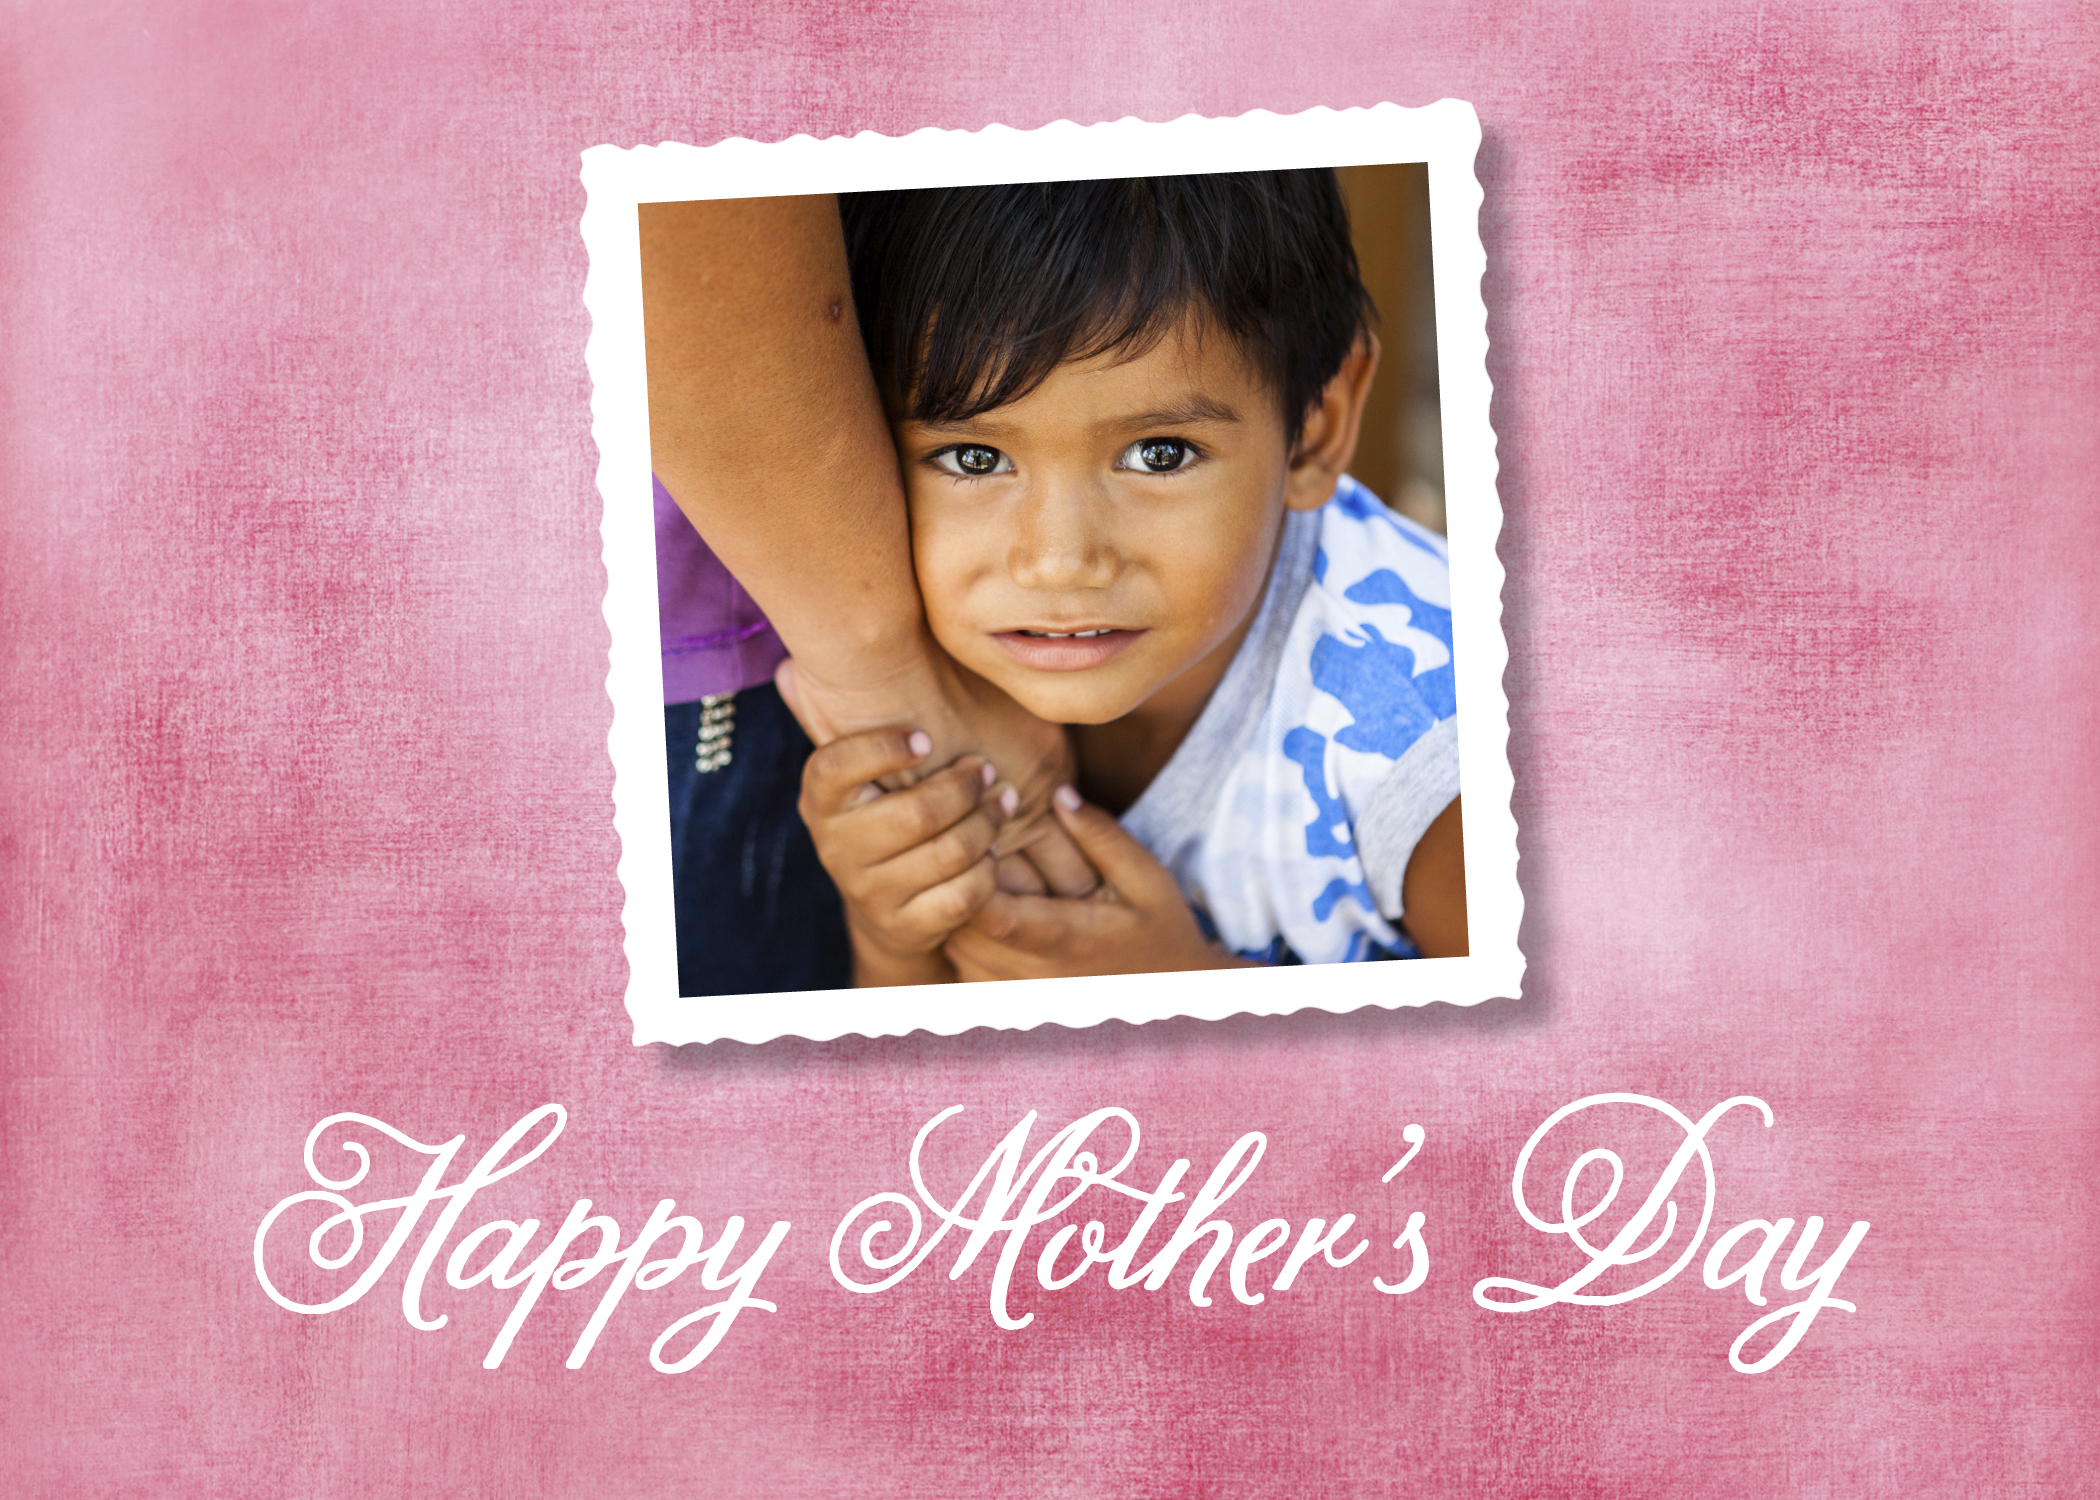 Honor your mom & help an orphan this Mother's Day!